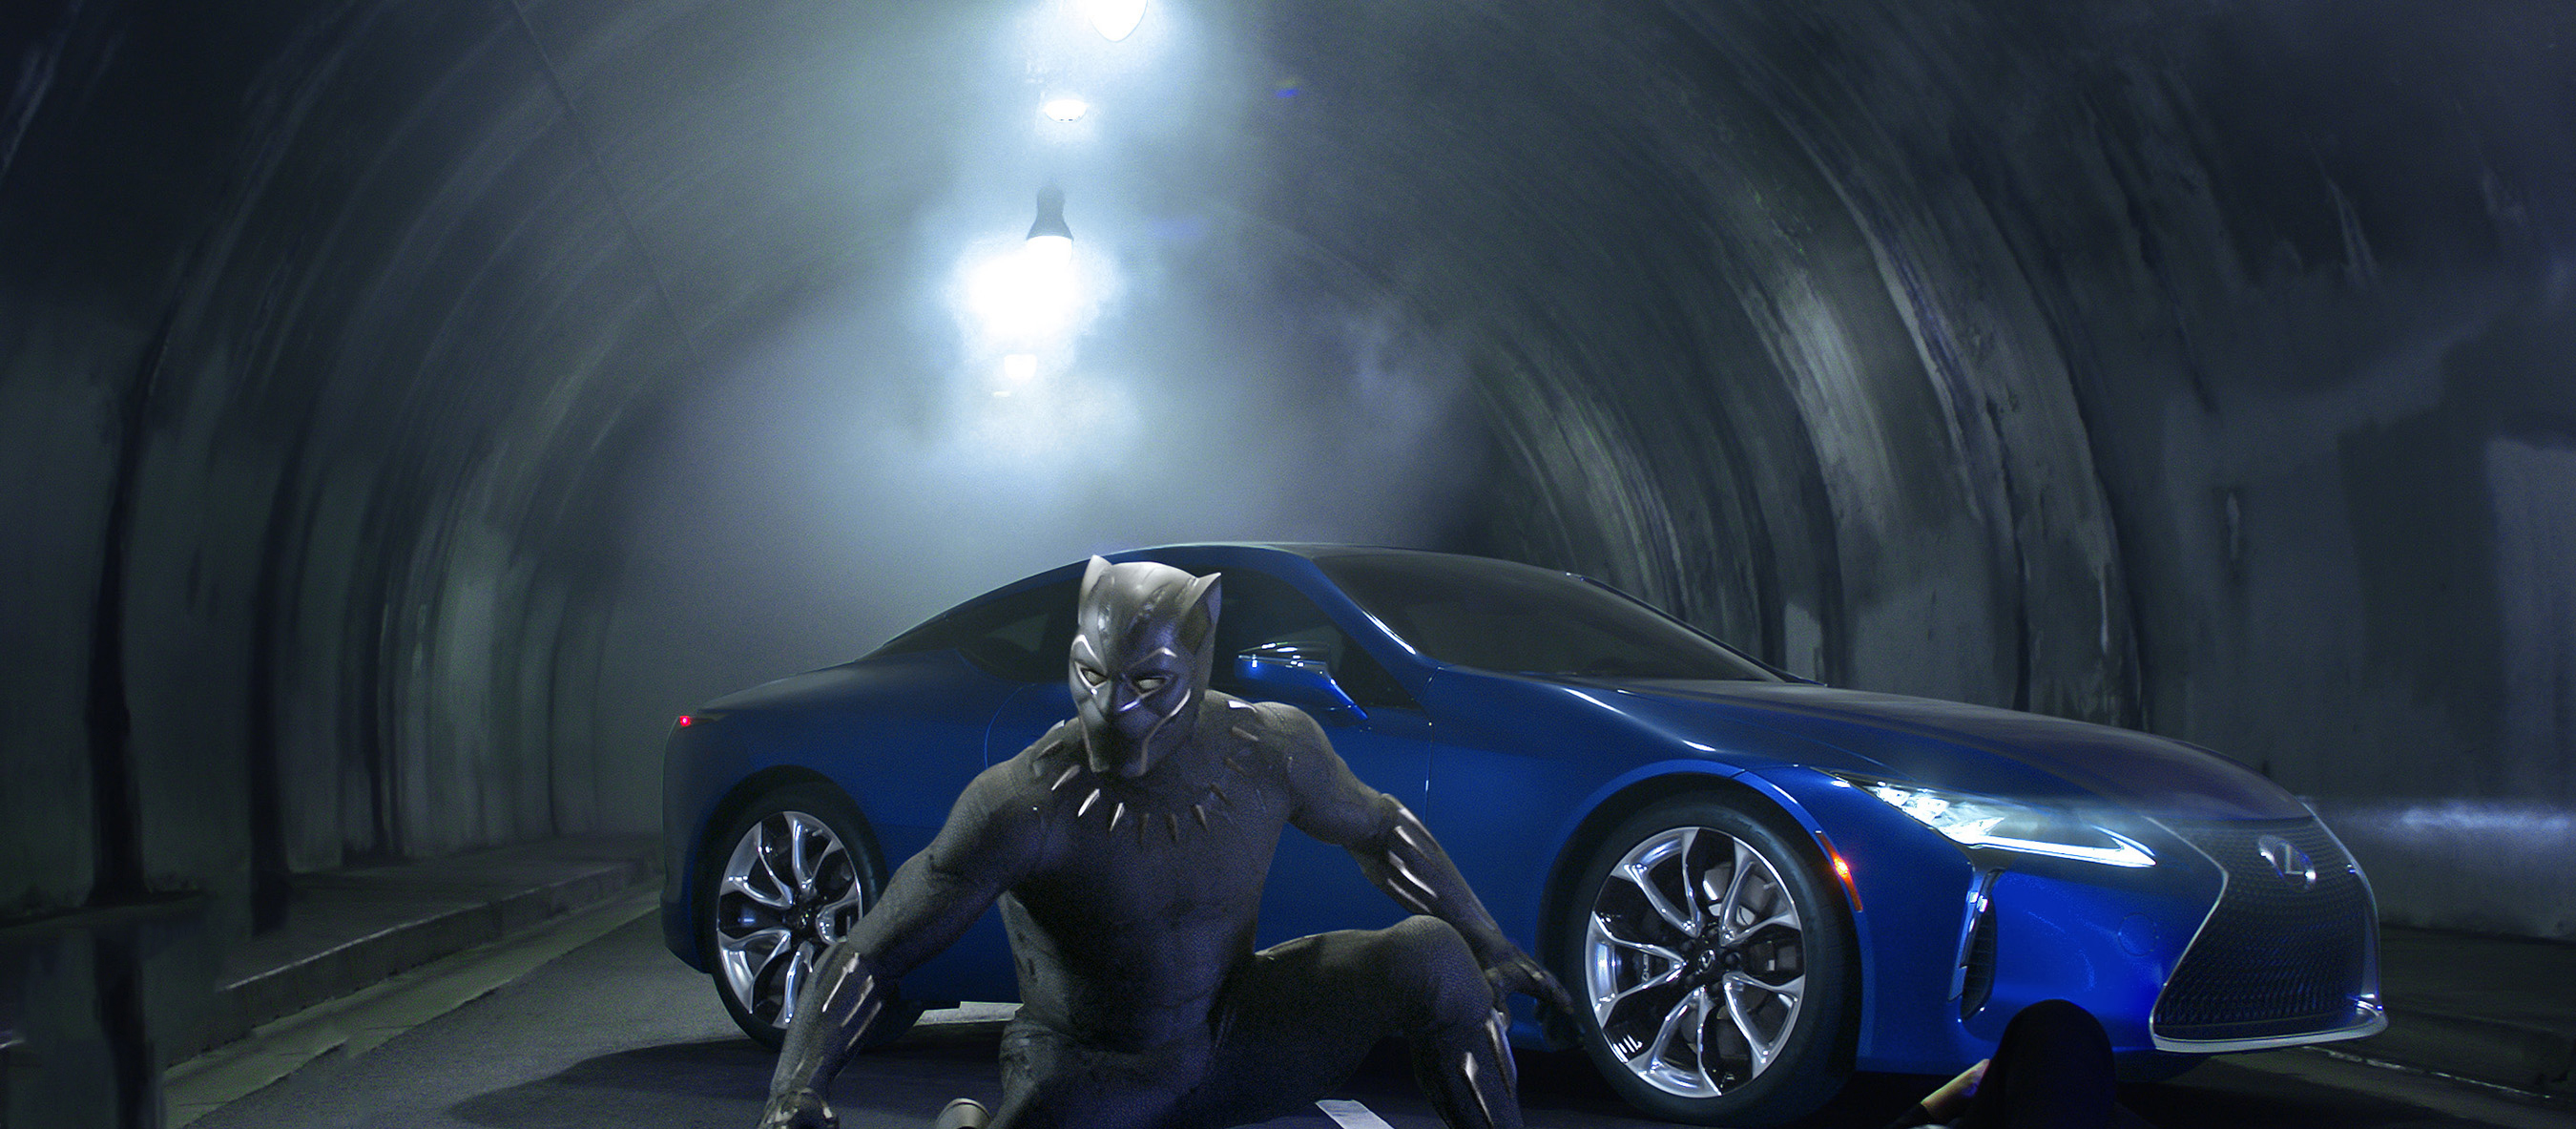 2017 Lexus Lc 500 >> Lexus Black Panther LC 500 2018 Movie, HD Movies, 4k Wallpapers, Images, Backgrounds, Photos and ...